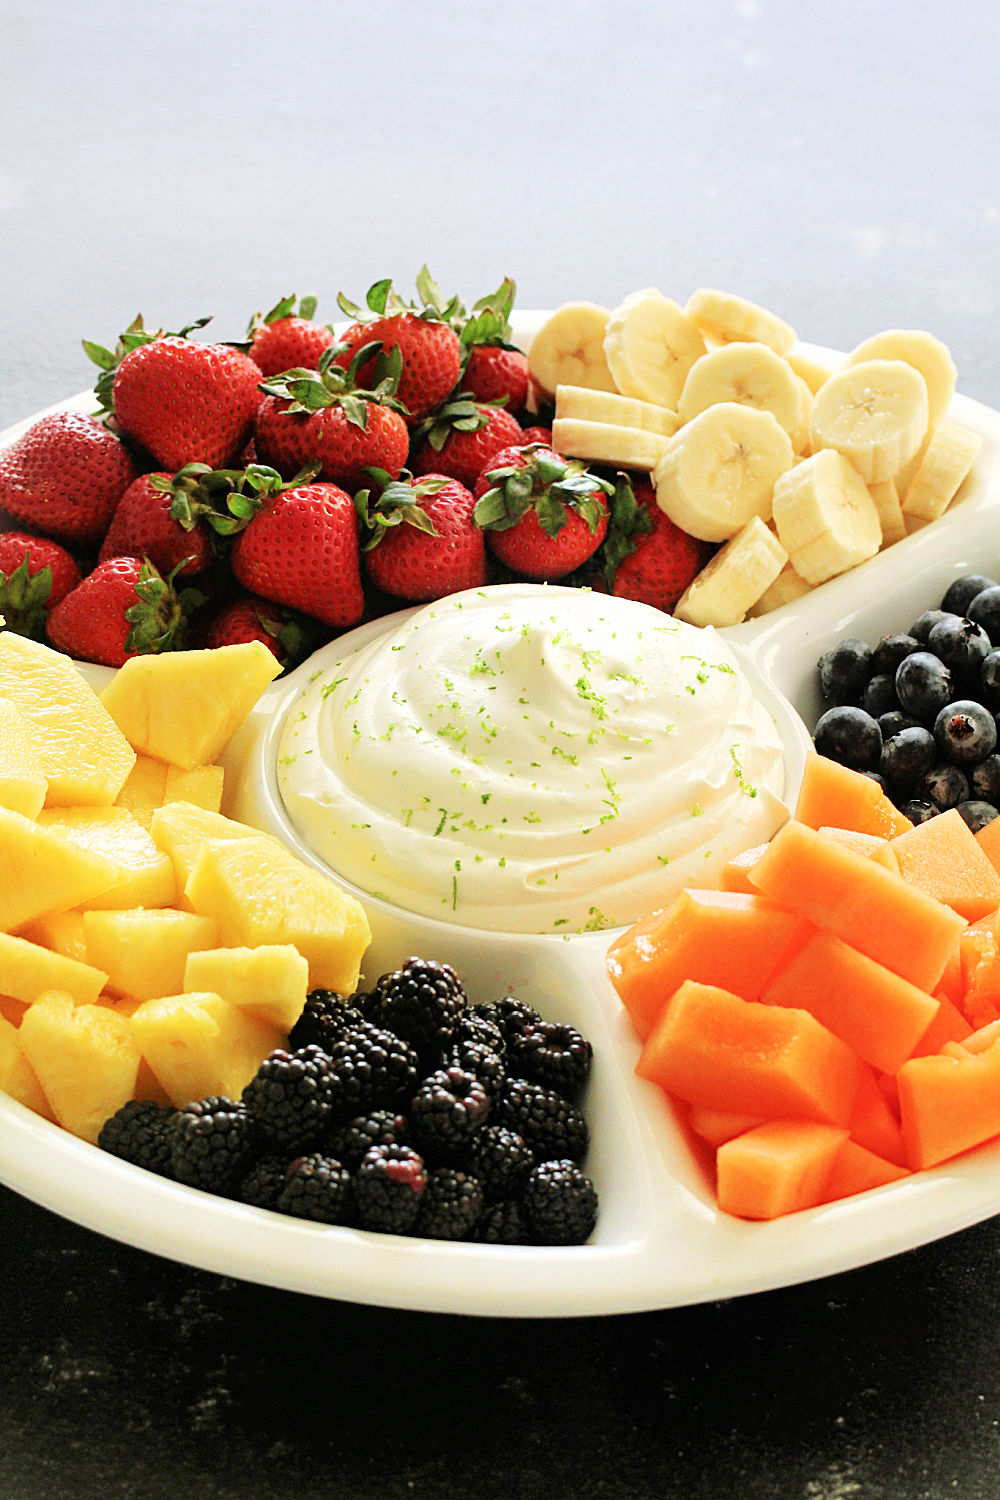 Creamy Lime Fruit Dip served with fruit on a white platter